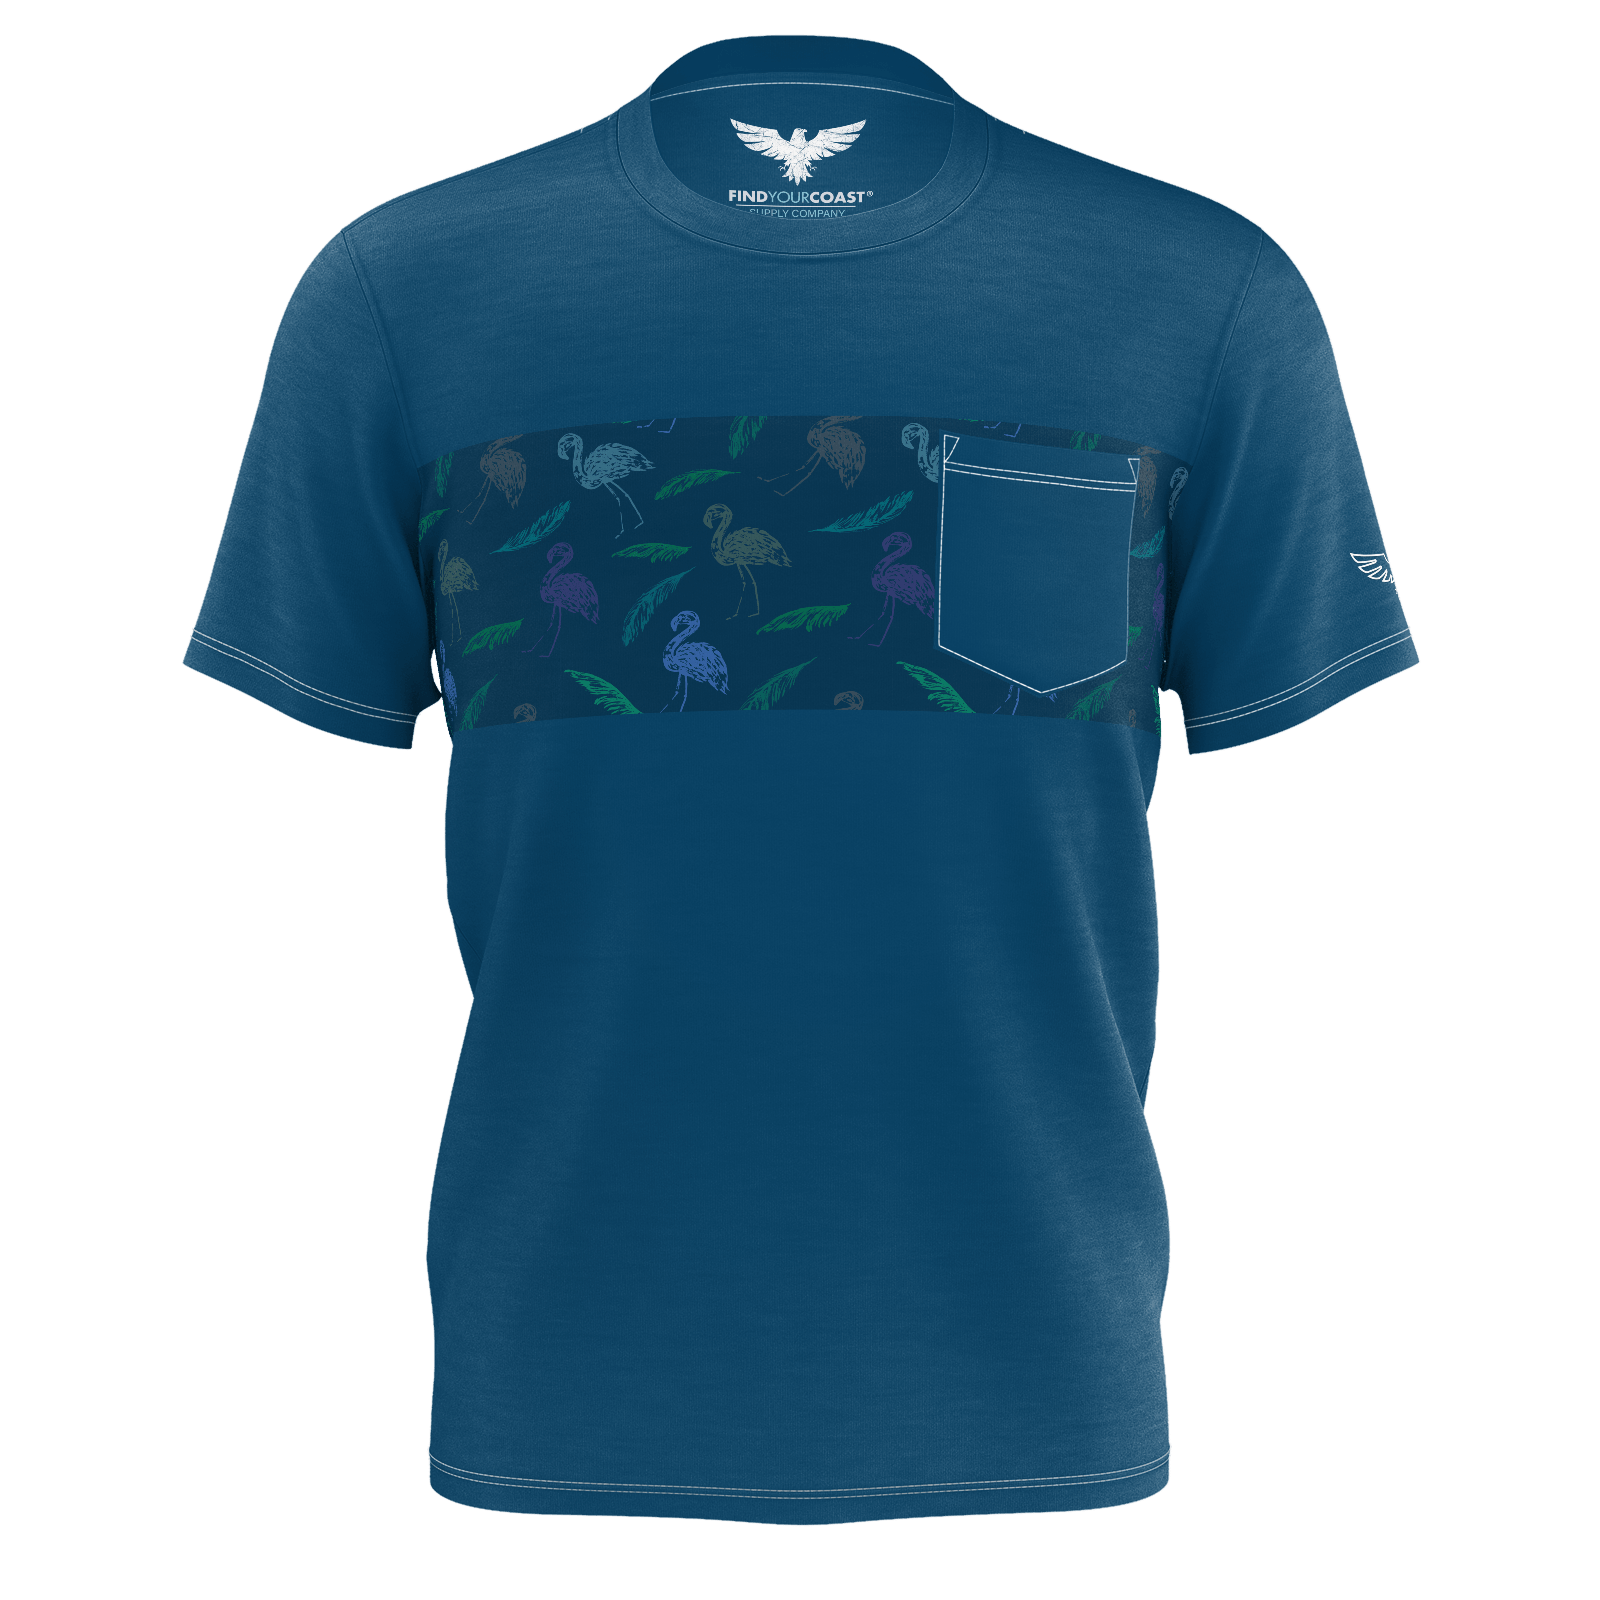 Men's Find Your Coast Lifestyle Flamingo Recycled Knit Pocket Tee - Find Your Coast Supply Co.